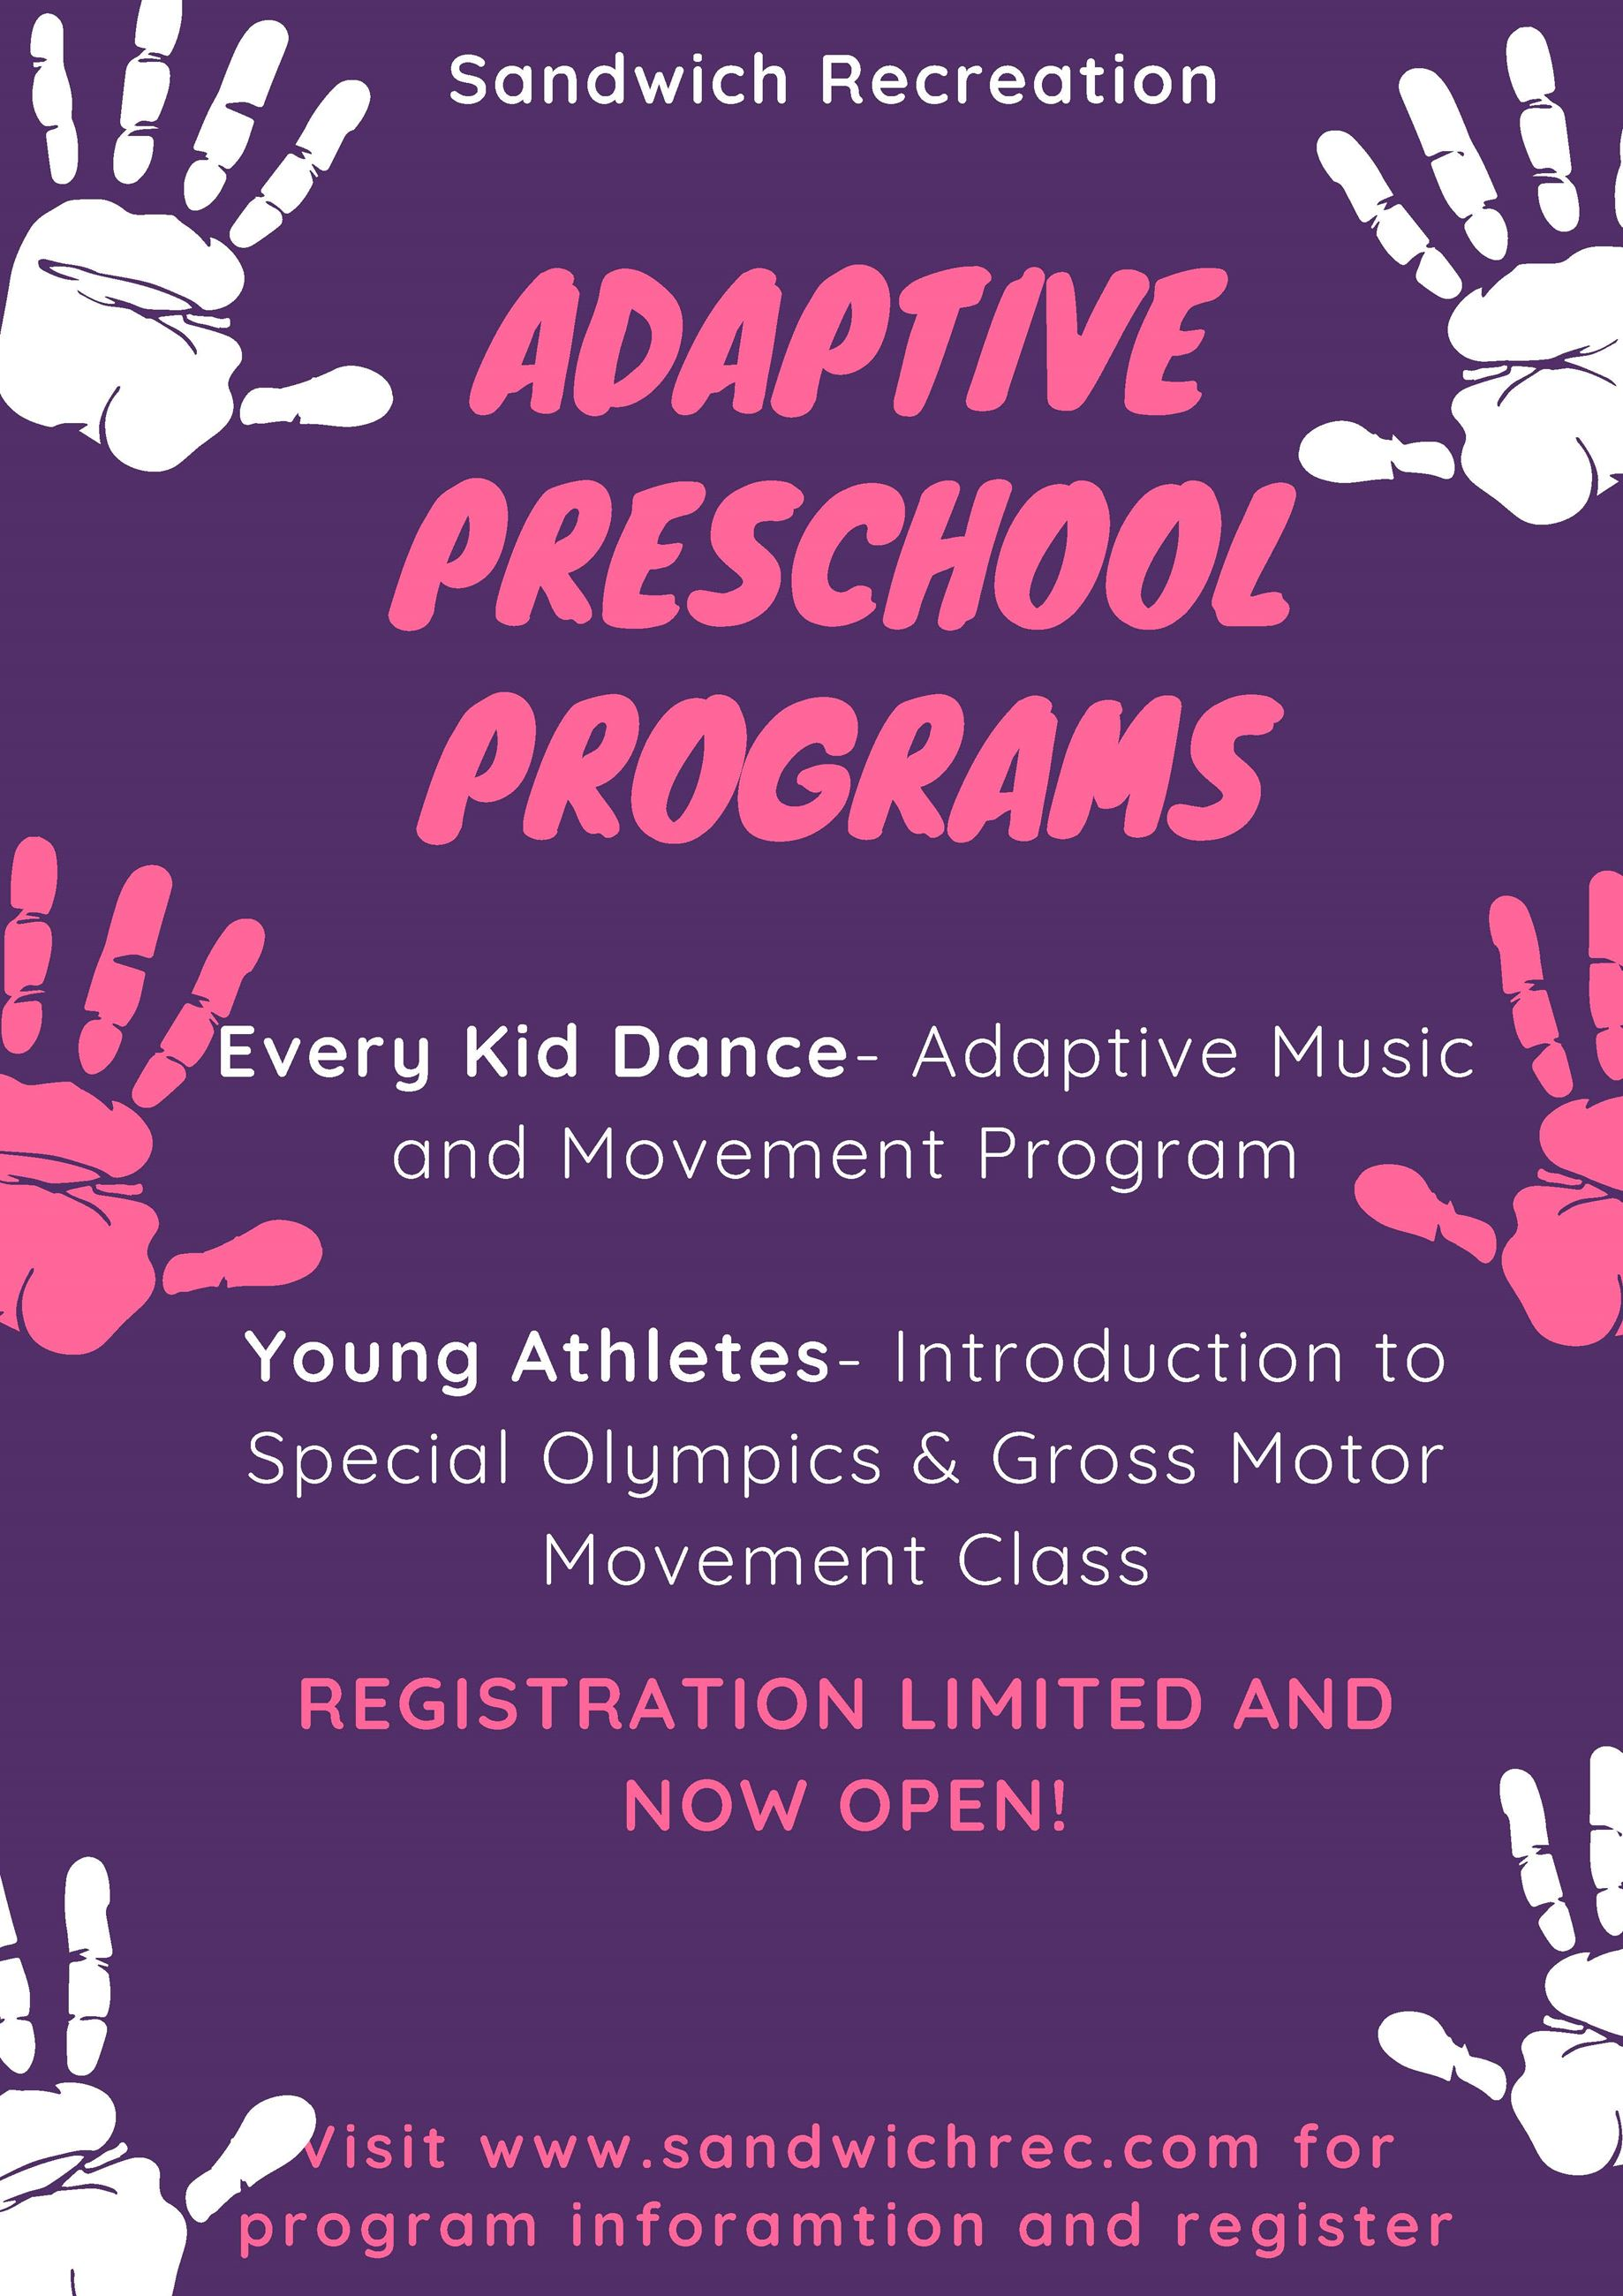 Fall Preschool Program Fall 2020 Poster